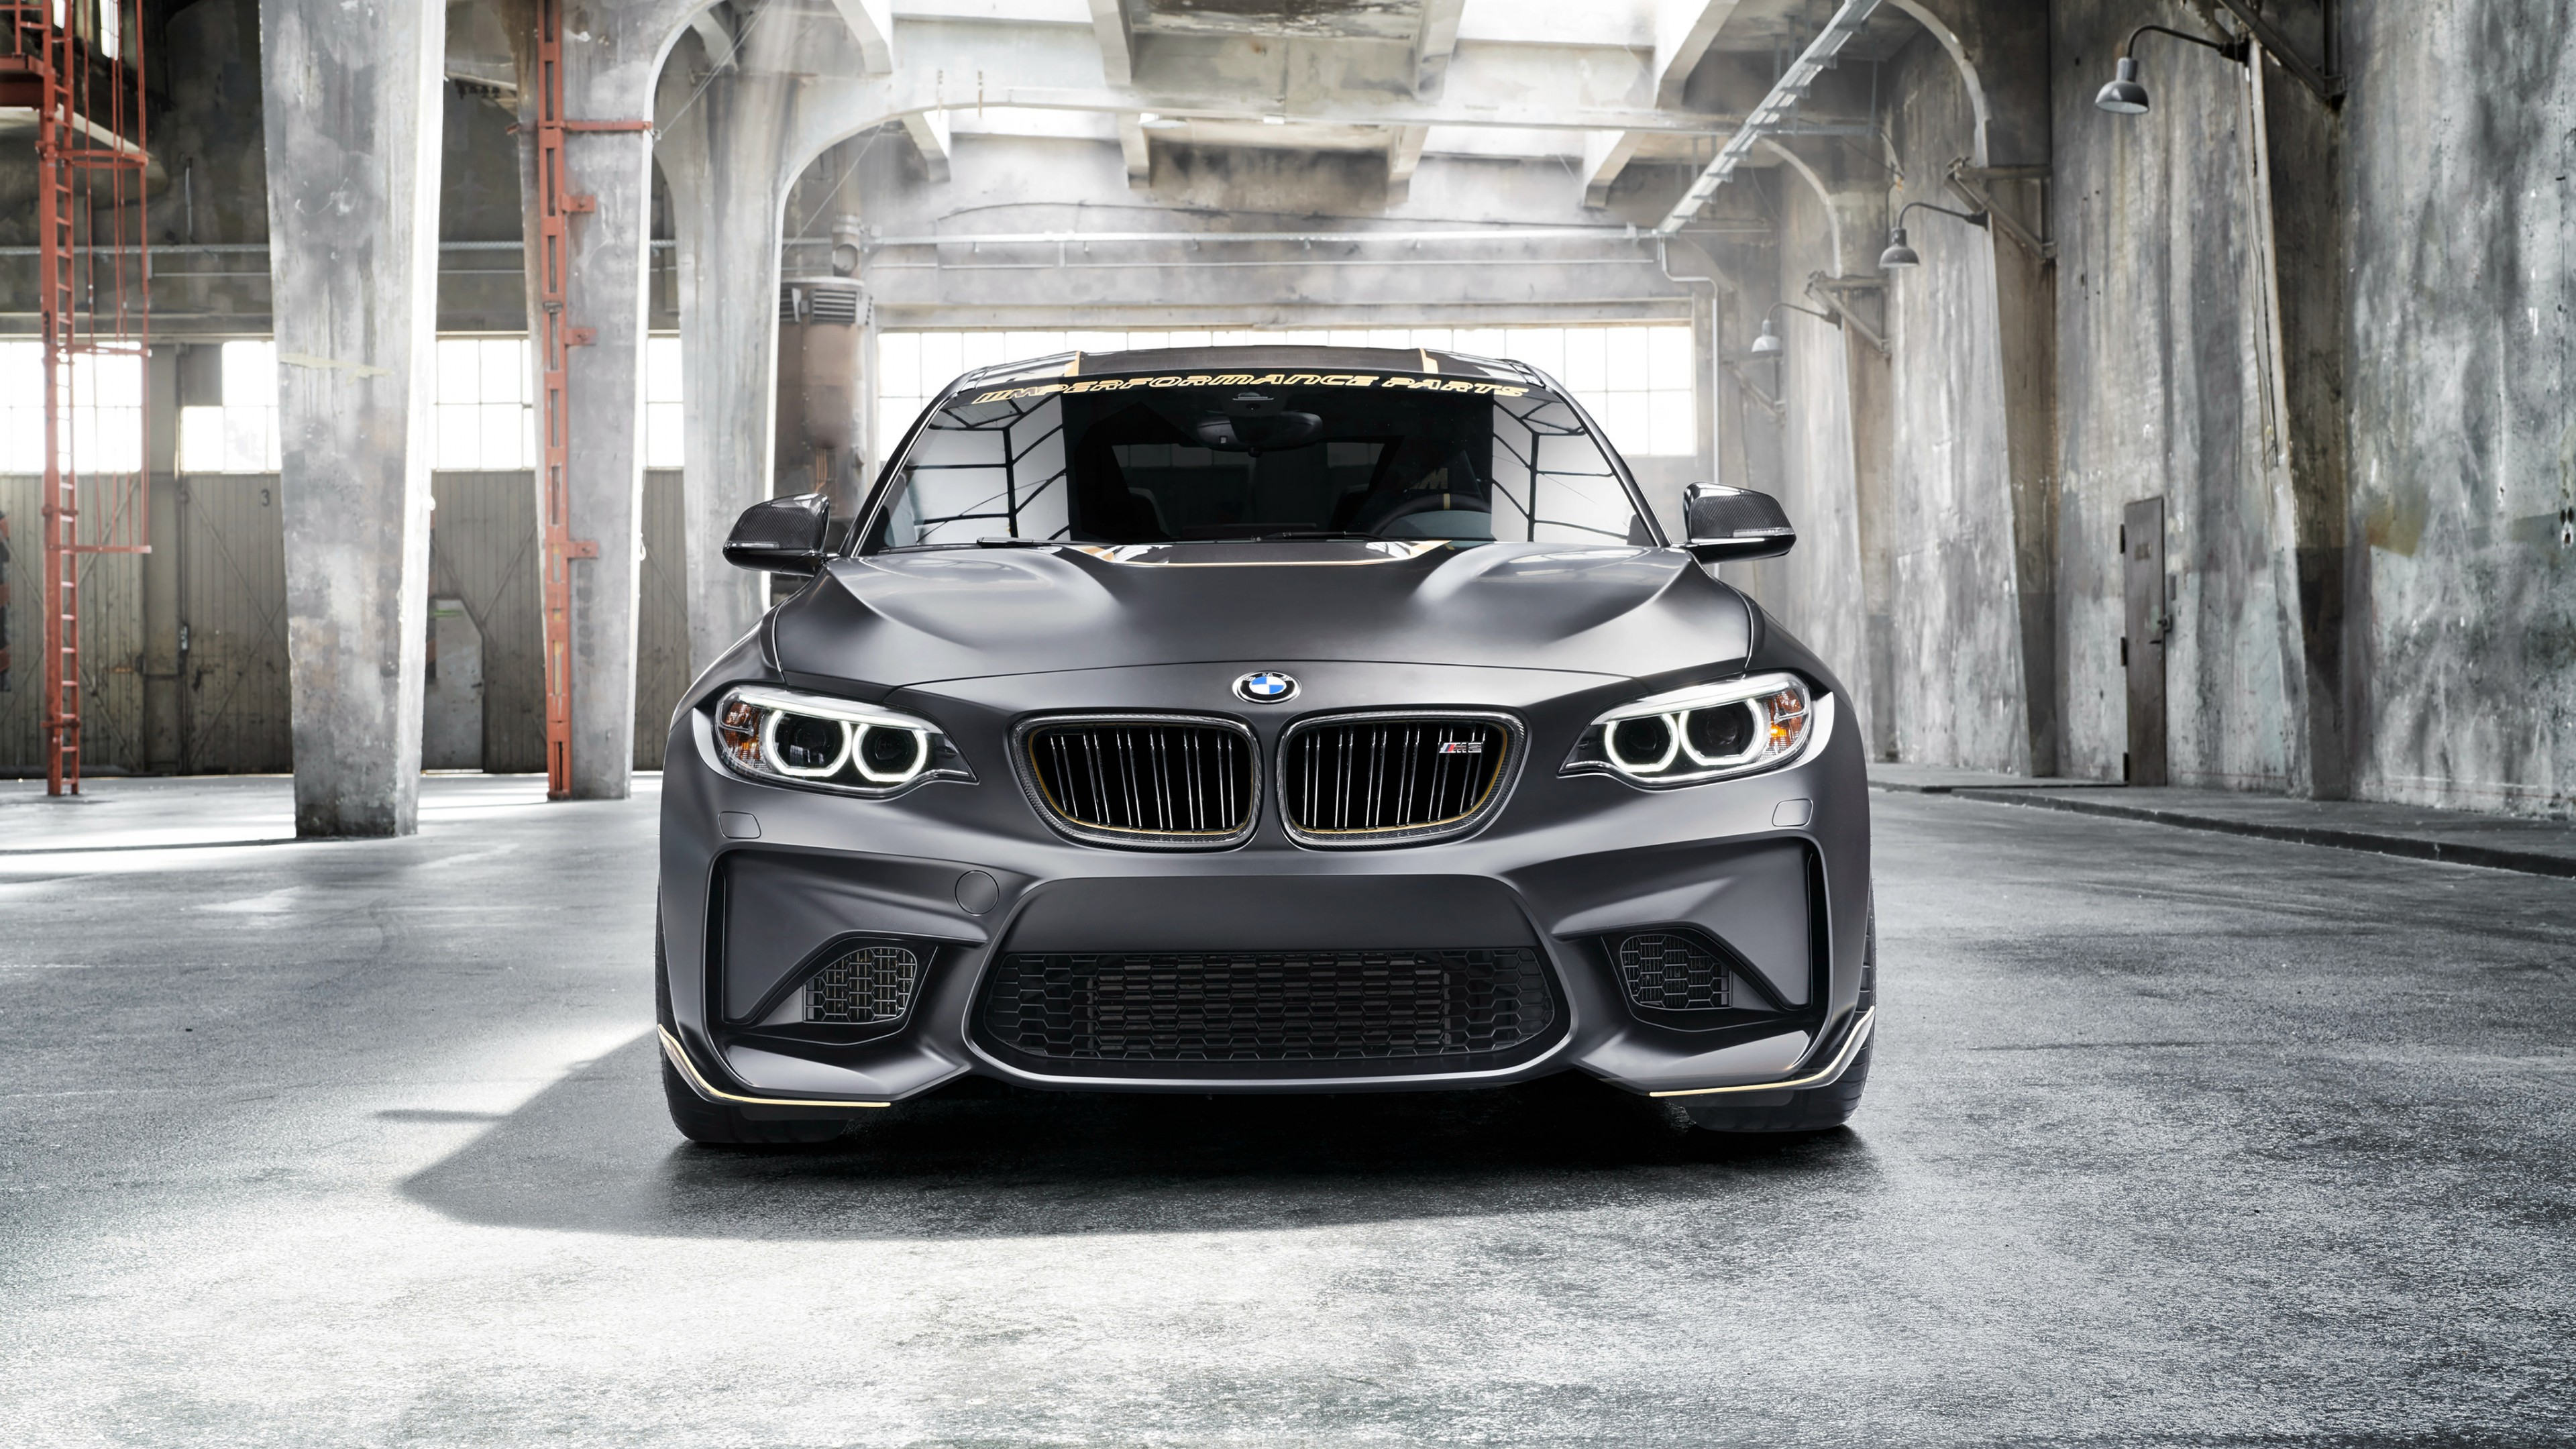 bmw m2 m performance parts concept 2018 4k wallpaper hd. Black Bedroom Furniture Sets. Home Design Ideas